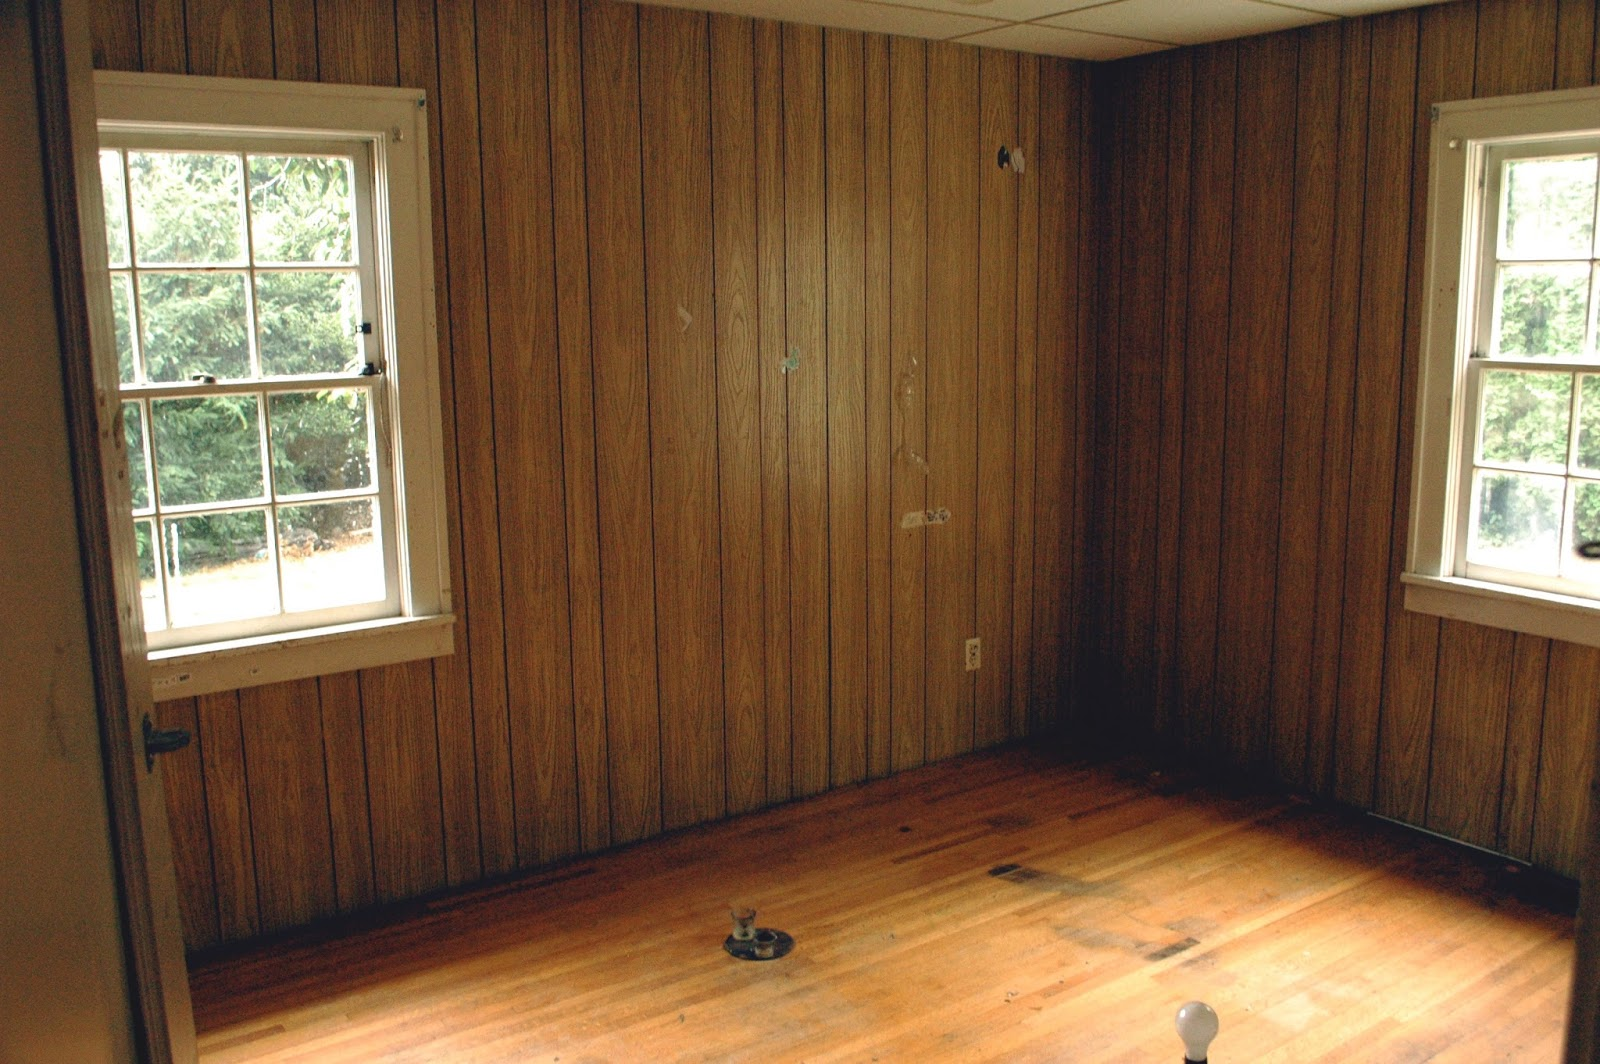 faux wood paneling thrashed wood floor windows nailed shut dropped ceiling with curious water stain - Wood Paneling With Wood Floor